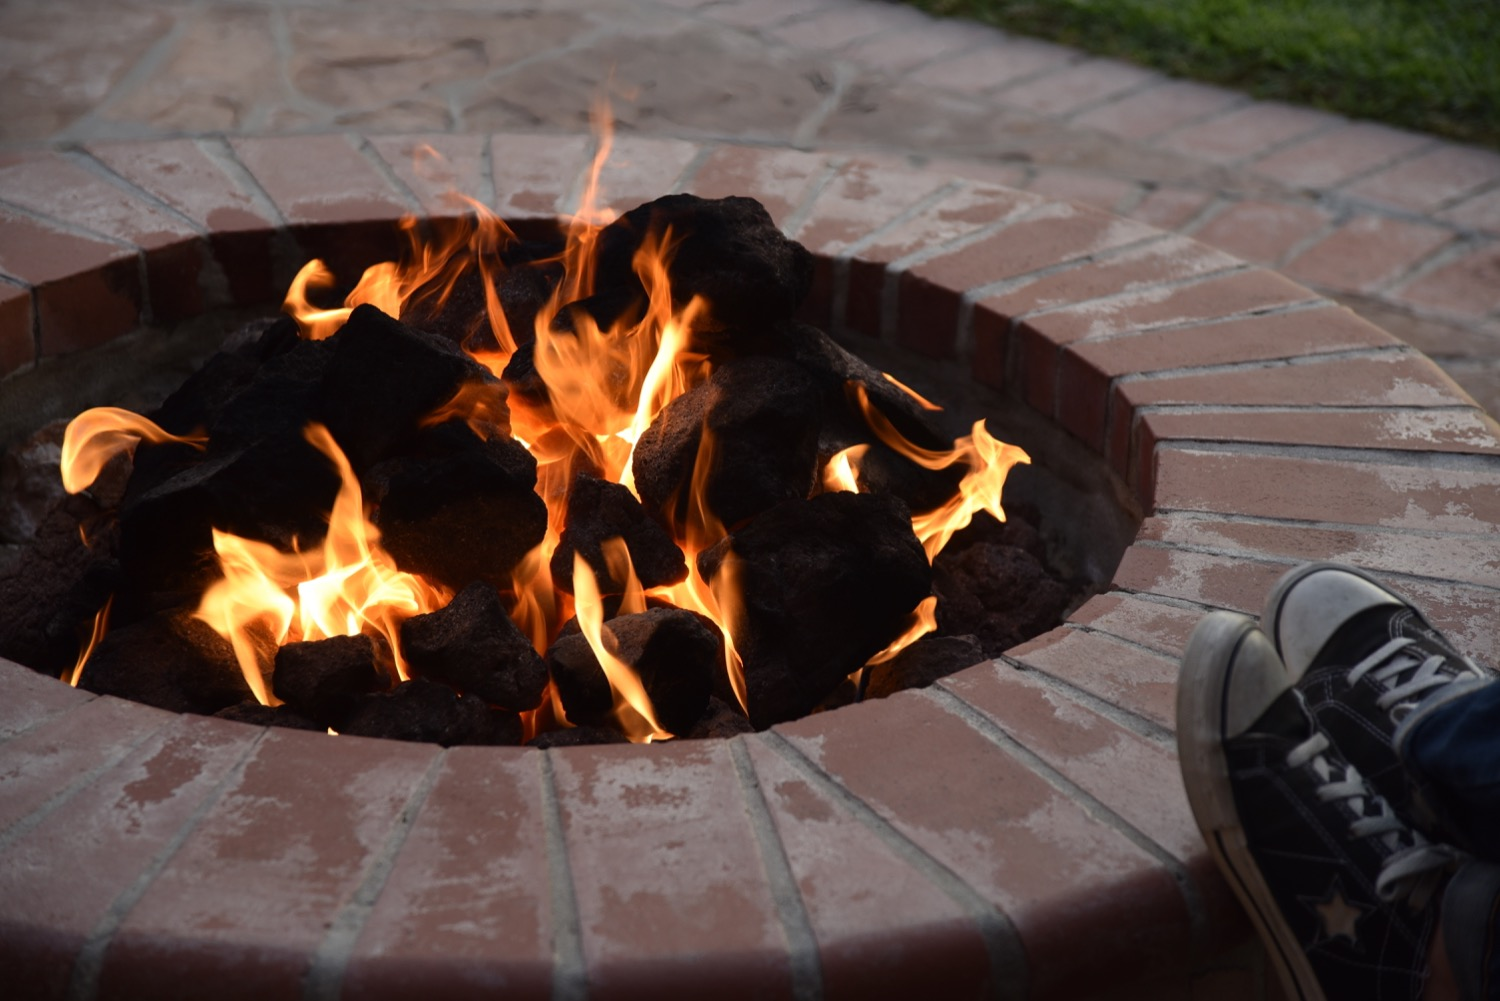 Person sitting next to a propane-powered outdoor fire pit made of brick.